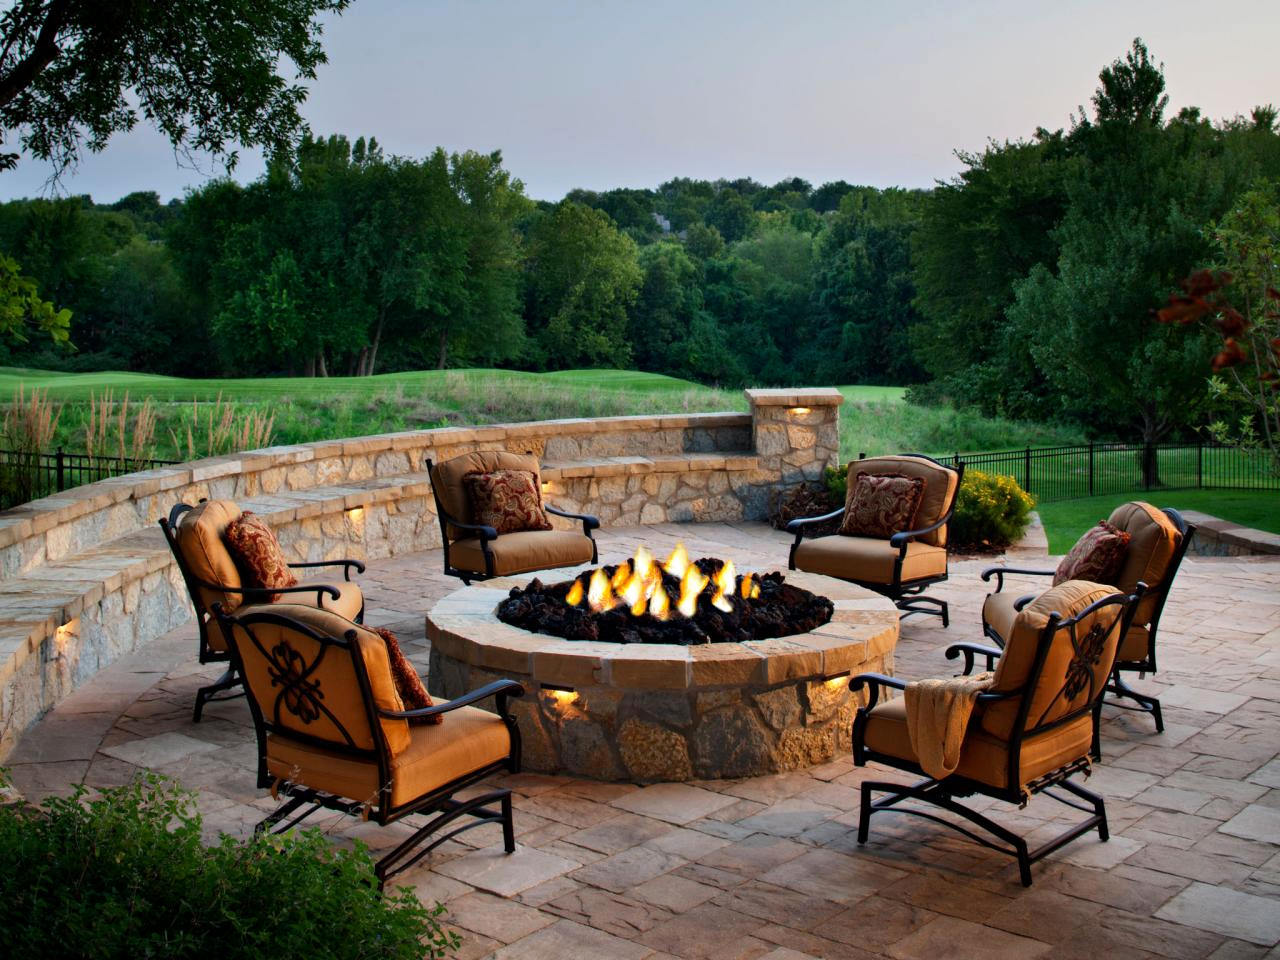 Fire Pits Expand Outdoor Living Landscape Design Cottage Grove Wi Patio Driveway Middleton Madison Wi Pond Waunakee Wi